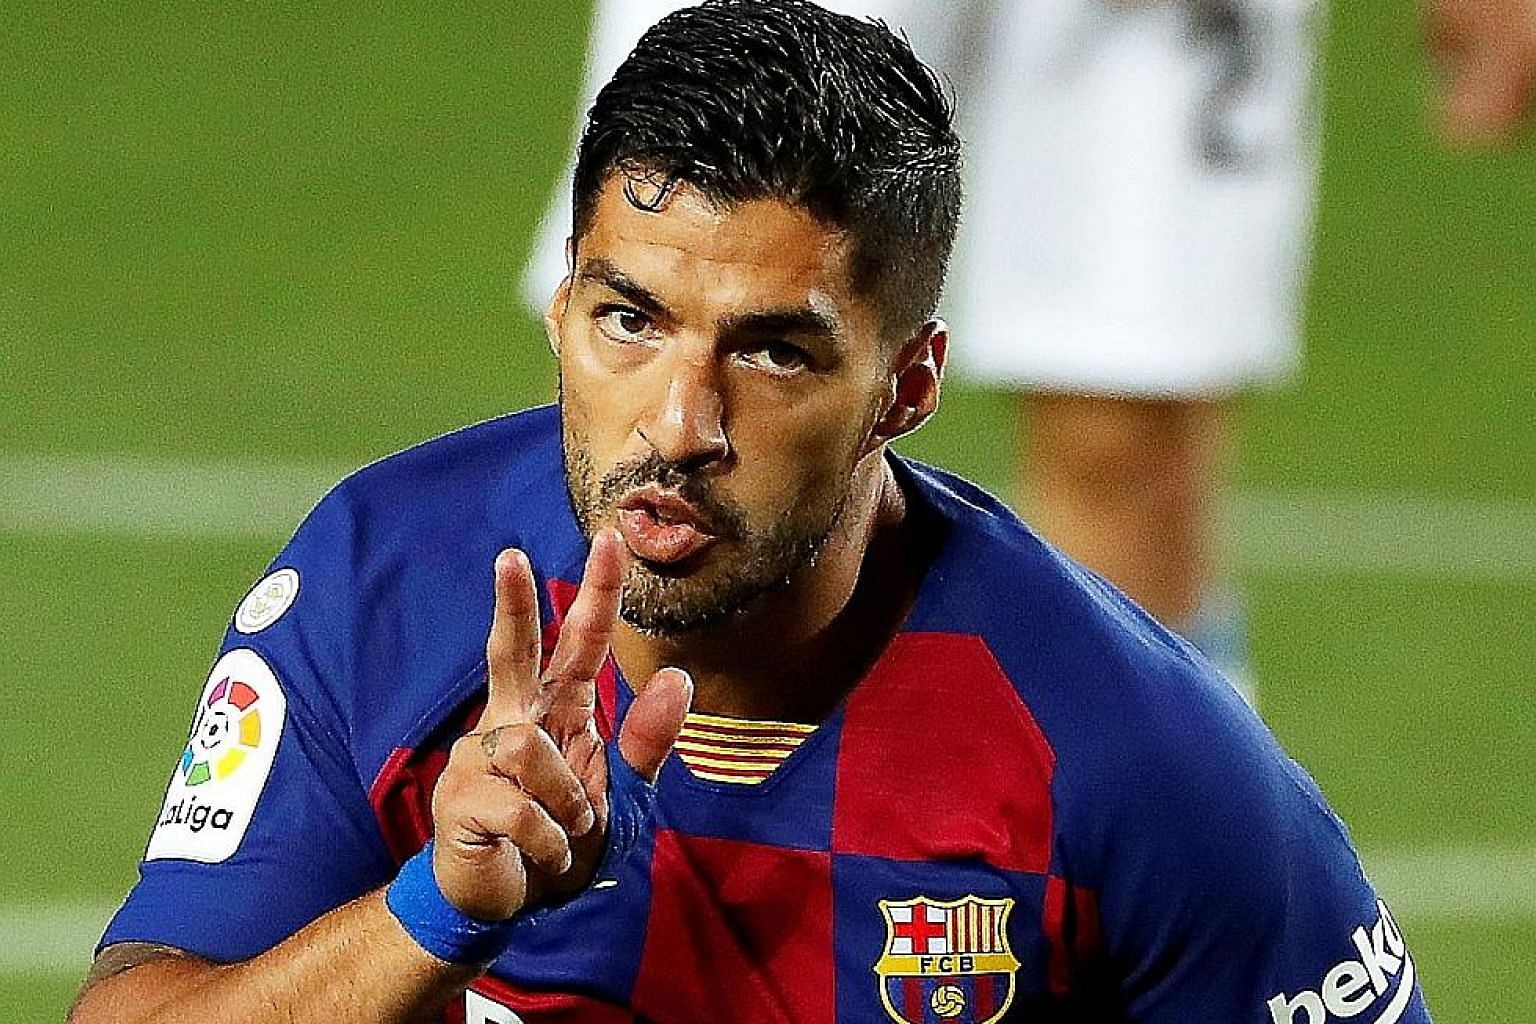 Barcelona striker Luis Suarez after scoring in the 1-0 win over Espanyol on Wednesday. It was his 195th goal for Barca in all competitions. PHOTO: EPA-EFE